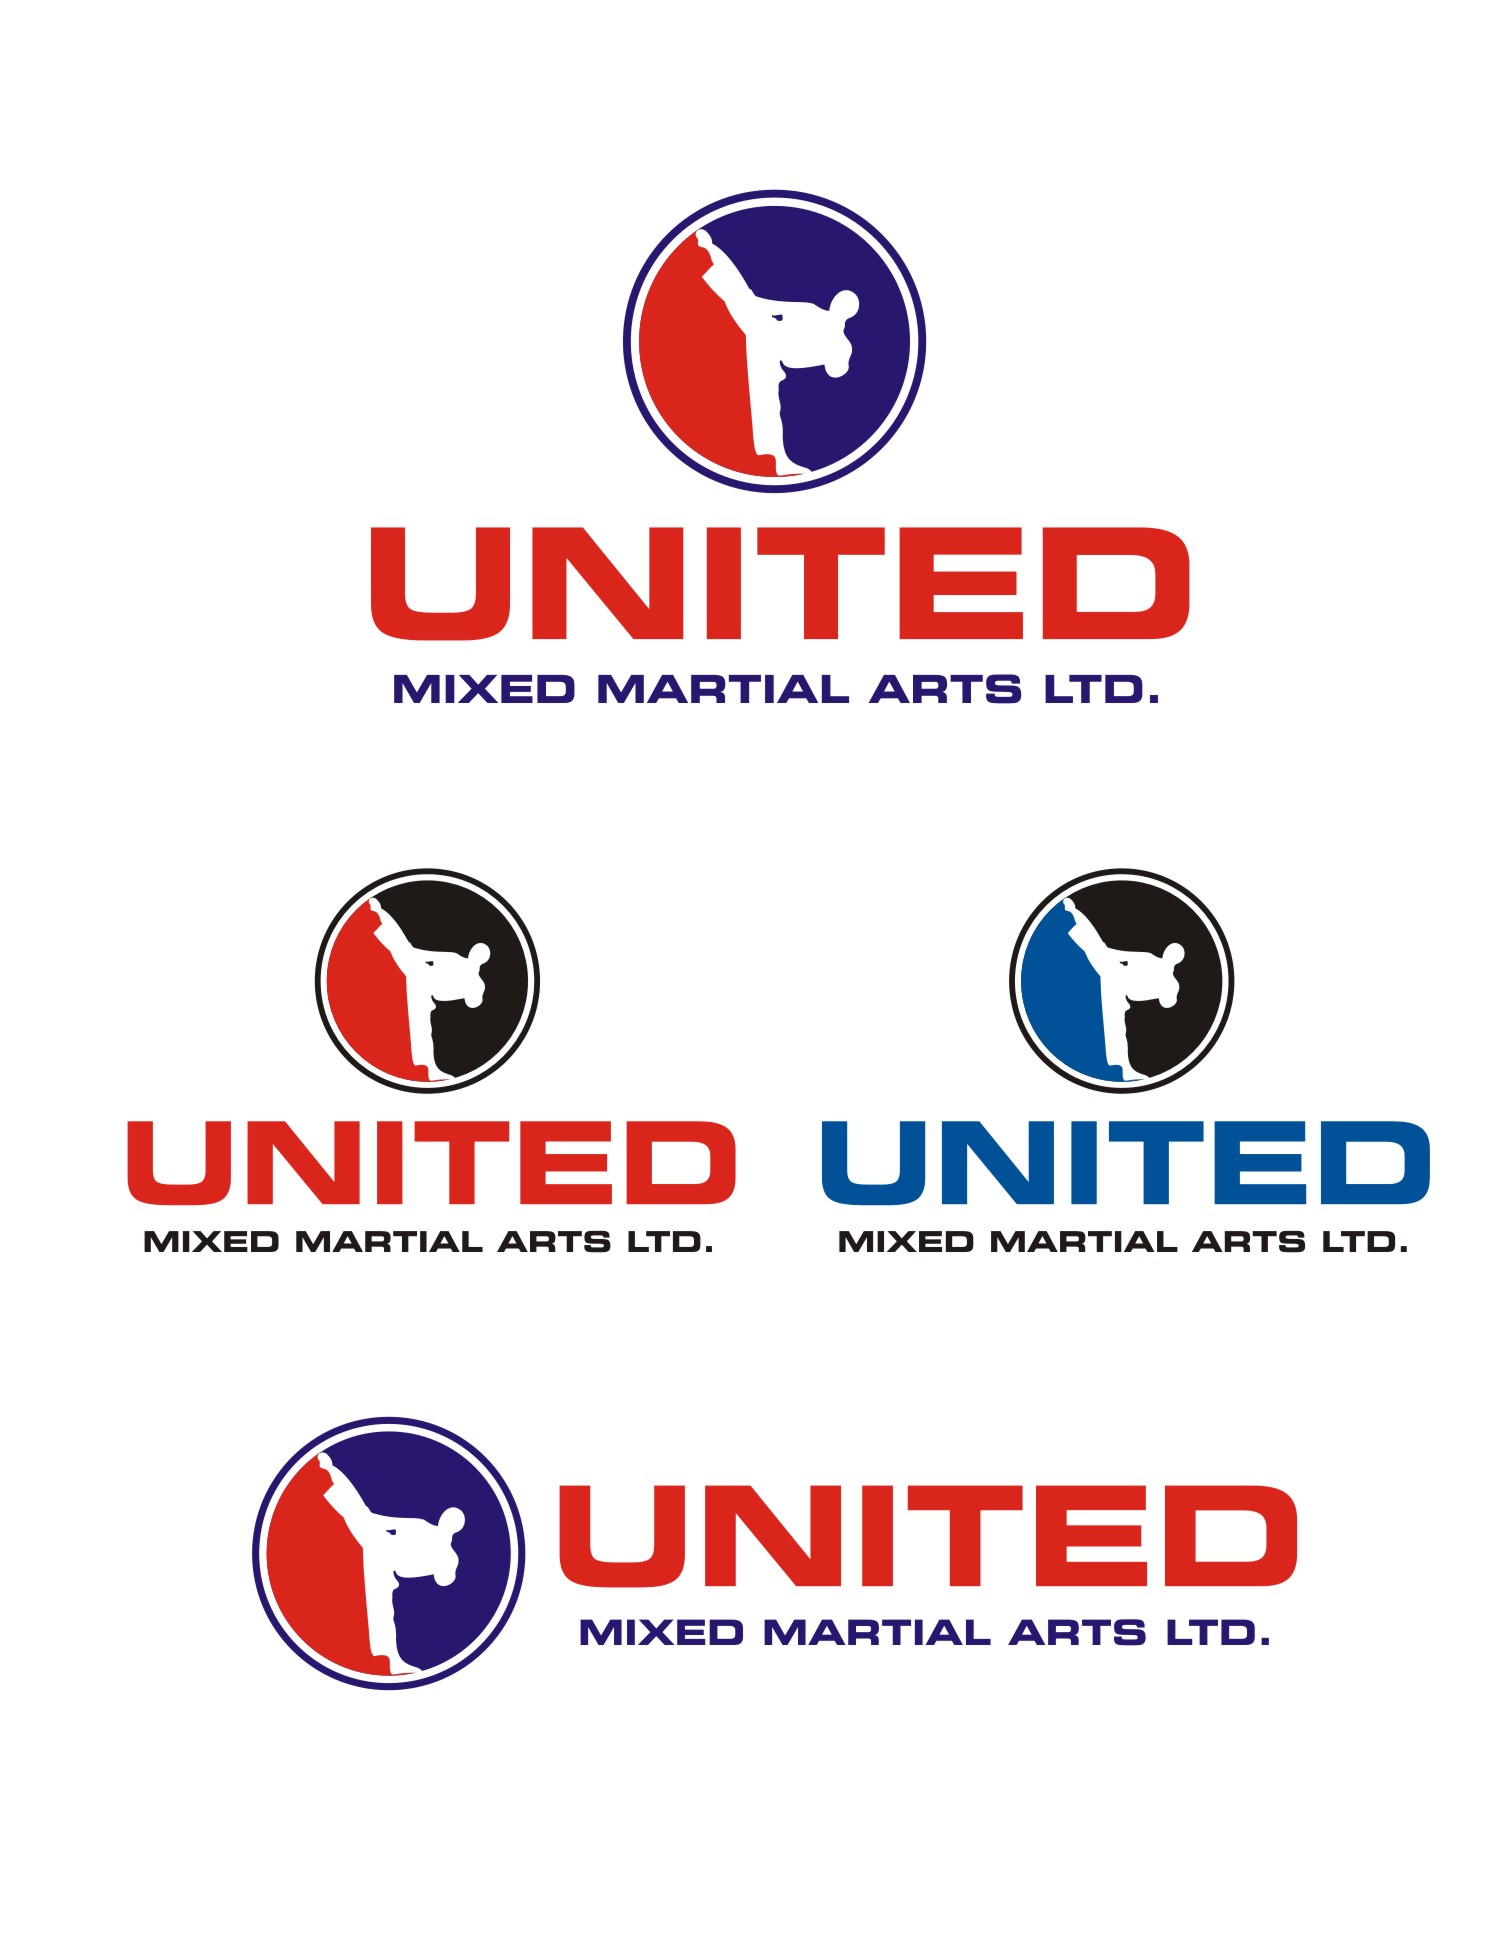 Logo Design by Spider Graphics - Entry No. 108 in the Logo Design Contest Artistic Logo Design for United Mixed Martial Arts Ltd..